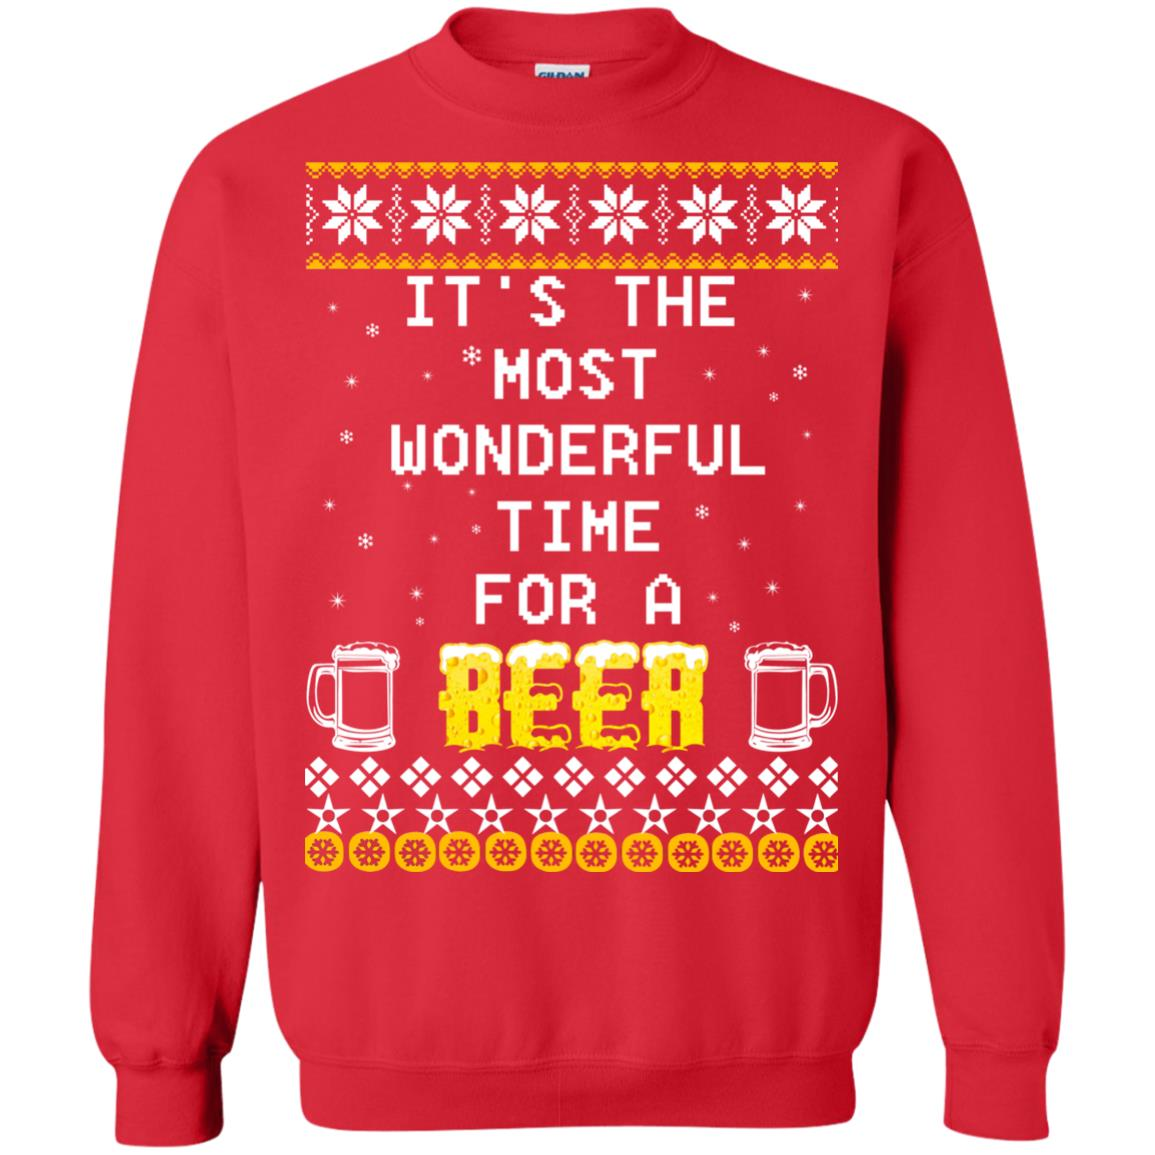 Beer Christmas Sweater.It S The Most Wonderful Time For A Beer Christmas Sweater Shirt Icestork